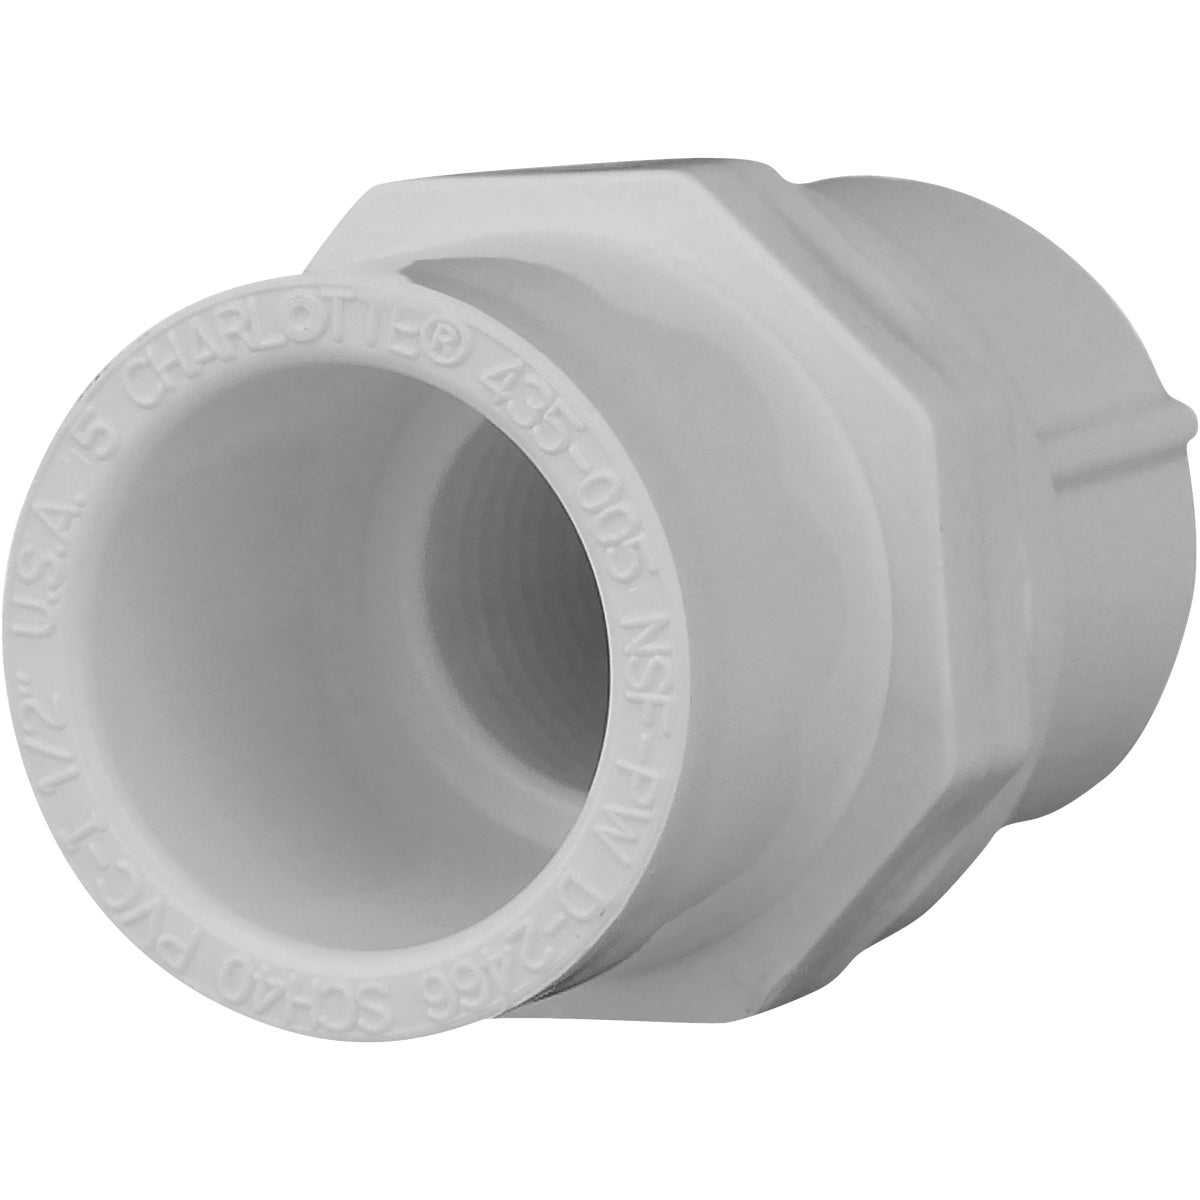 "1/2"" FIP SXFIP ADAPTER - 30305 by Genova Inc"